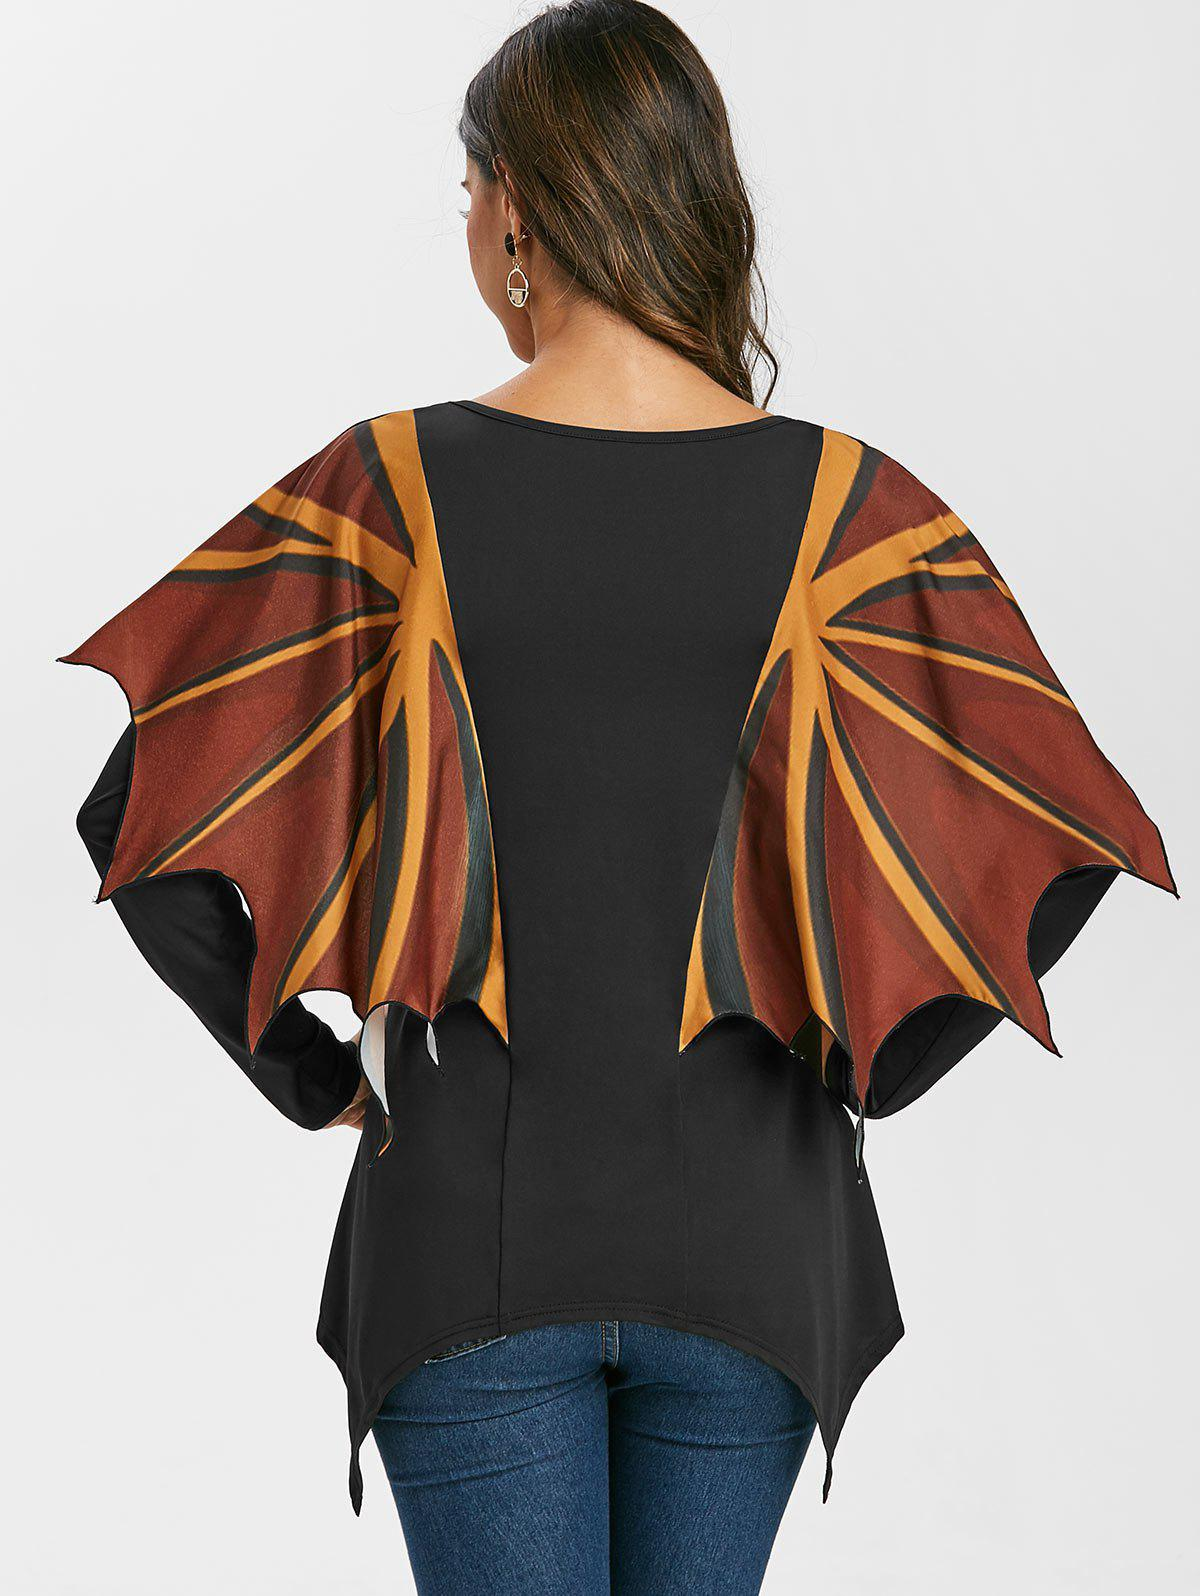 Hot V Neck Asymmetrical T Shirt with Wing